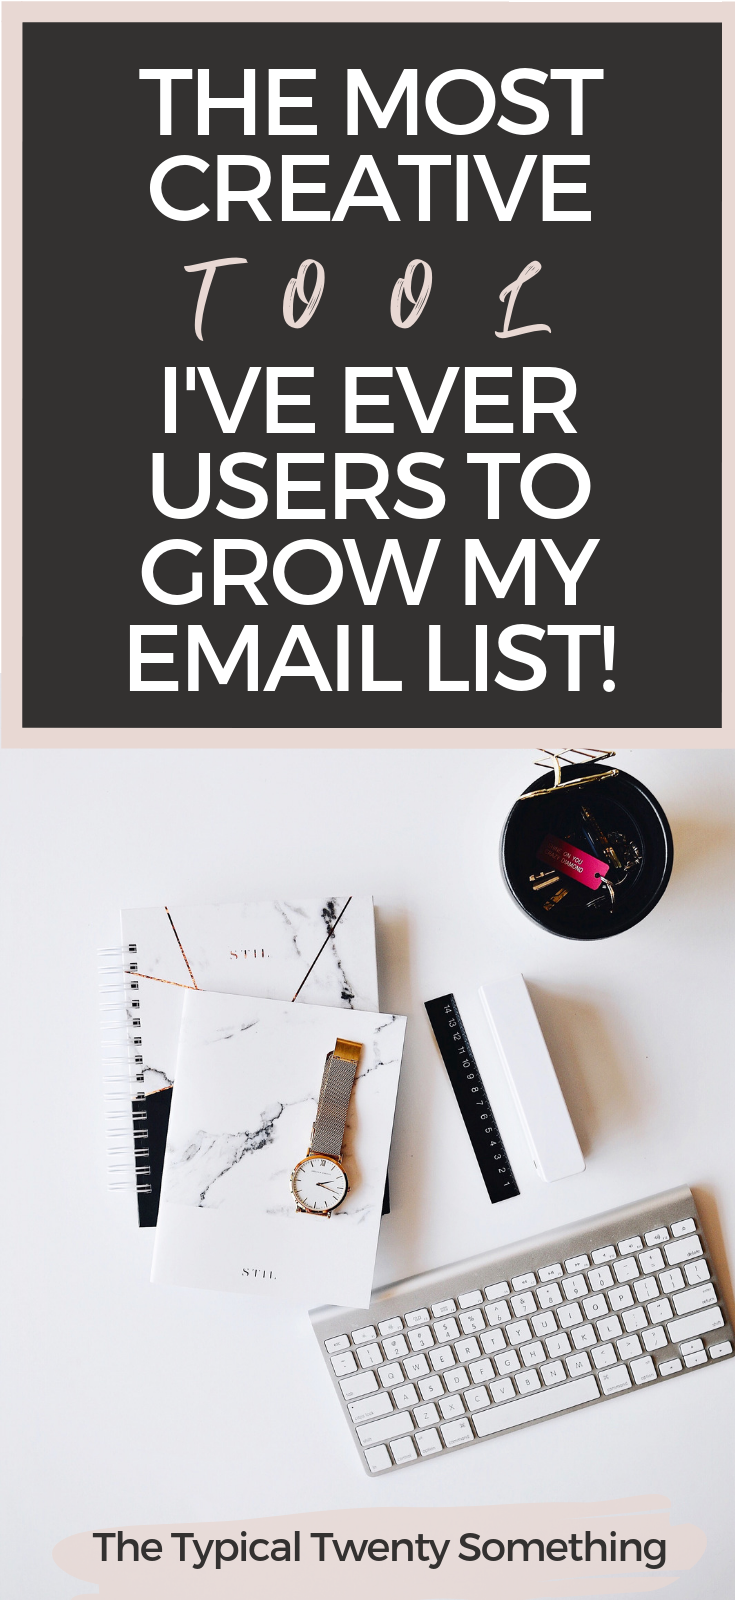 Email list tips